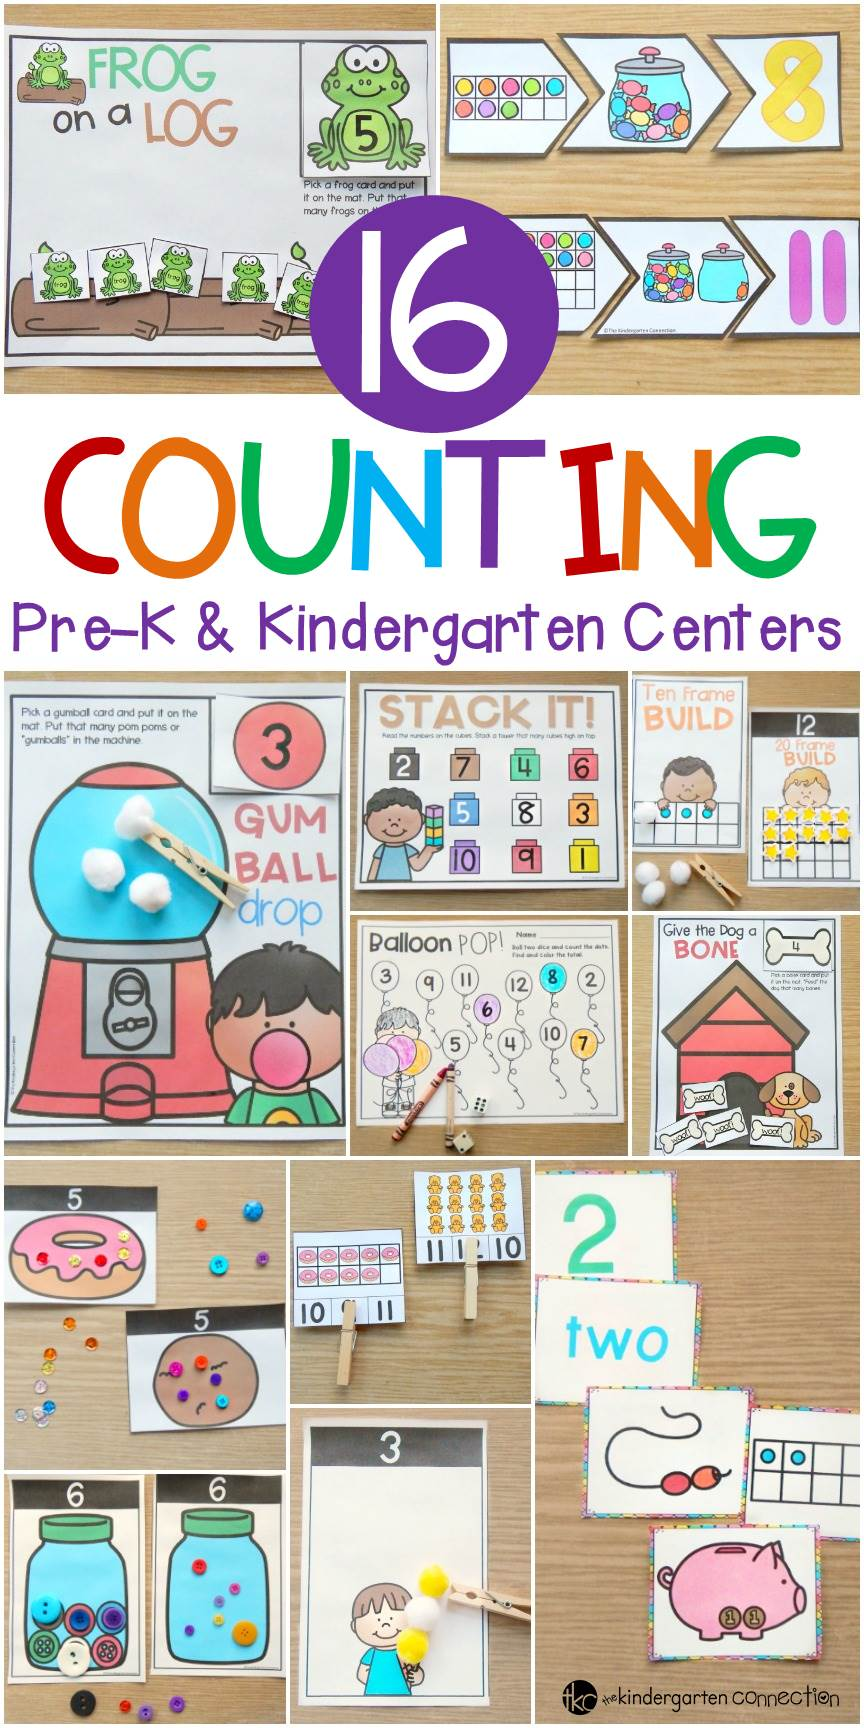 Practice counting from 0-20 with these 16 different counting activities and centers created specifically for Pre-K and Kindergarten students!